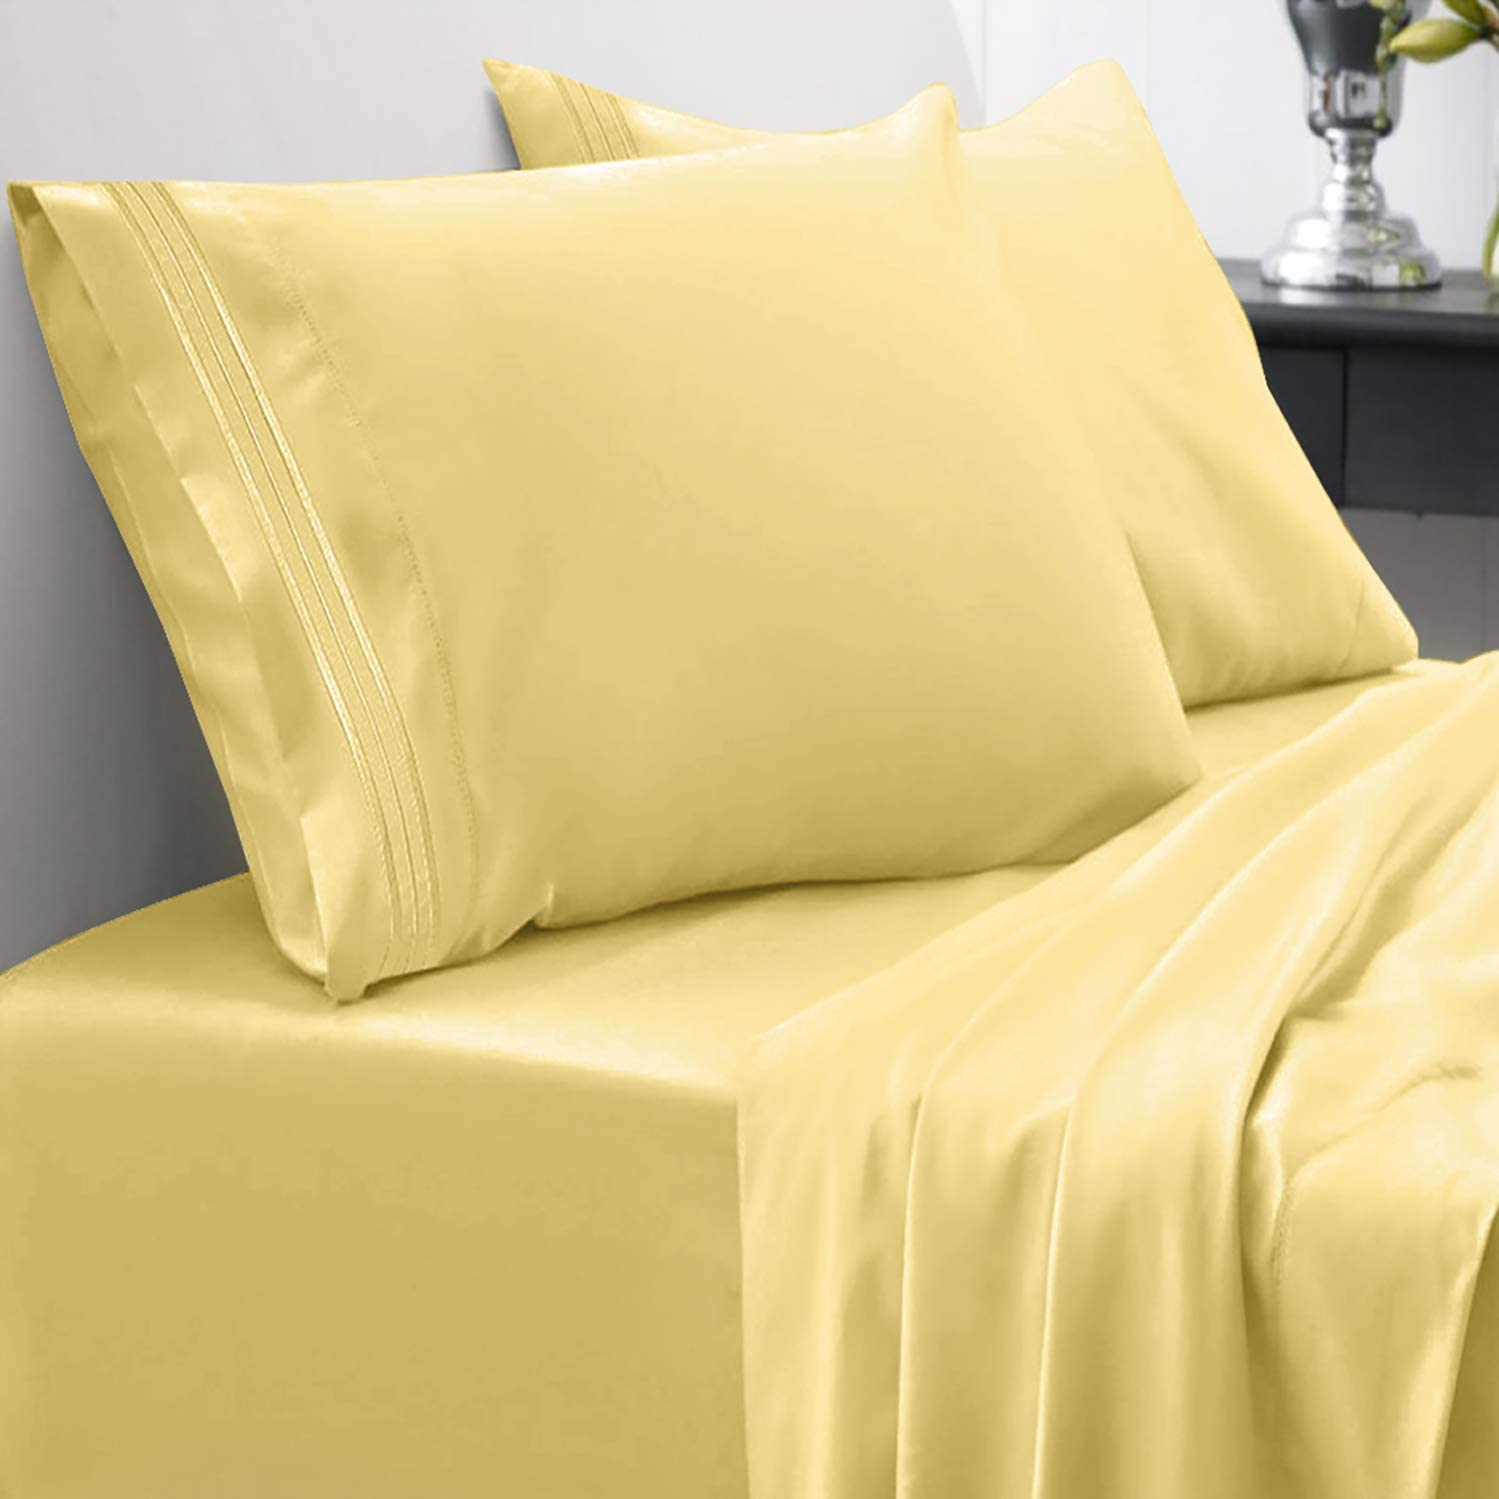 1800 Thread Count Yellow Bed Sheet Set